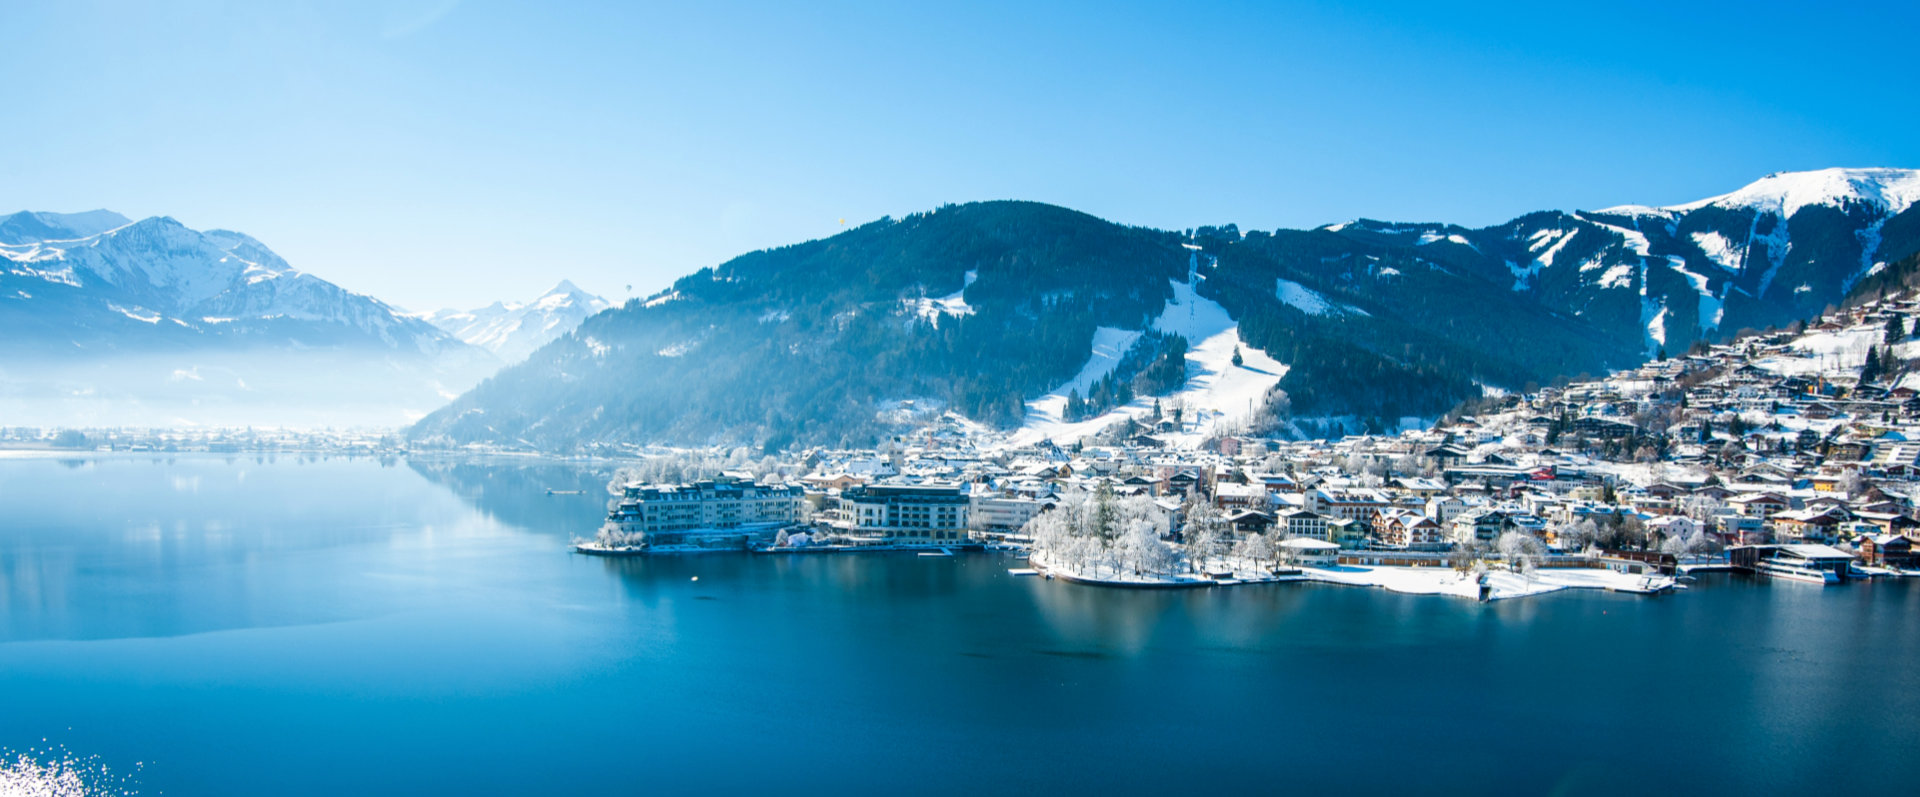 winter-urlaub-in-zell-am-see